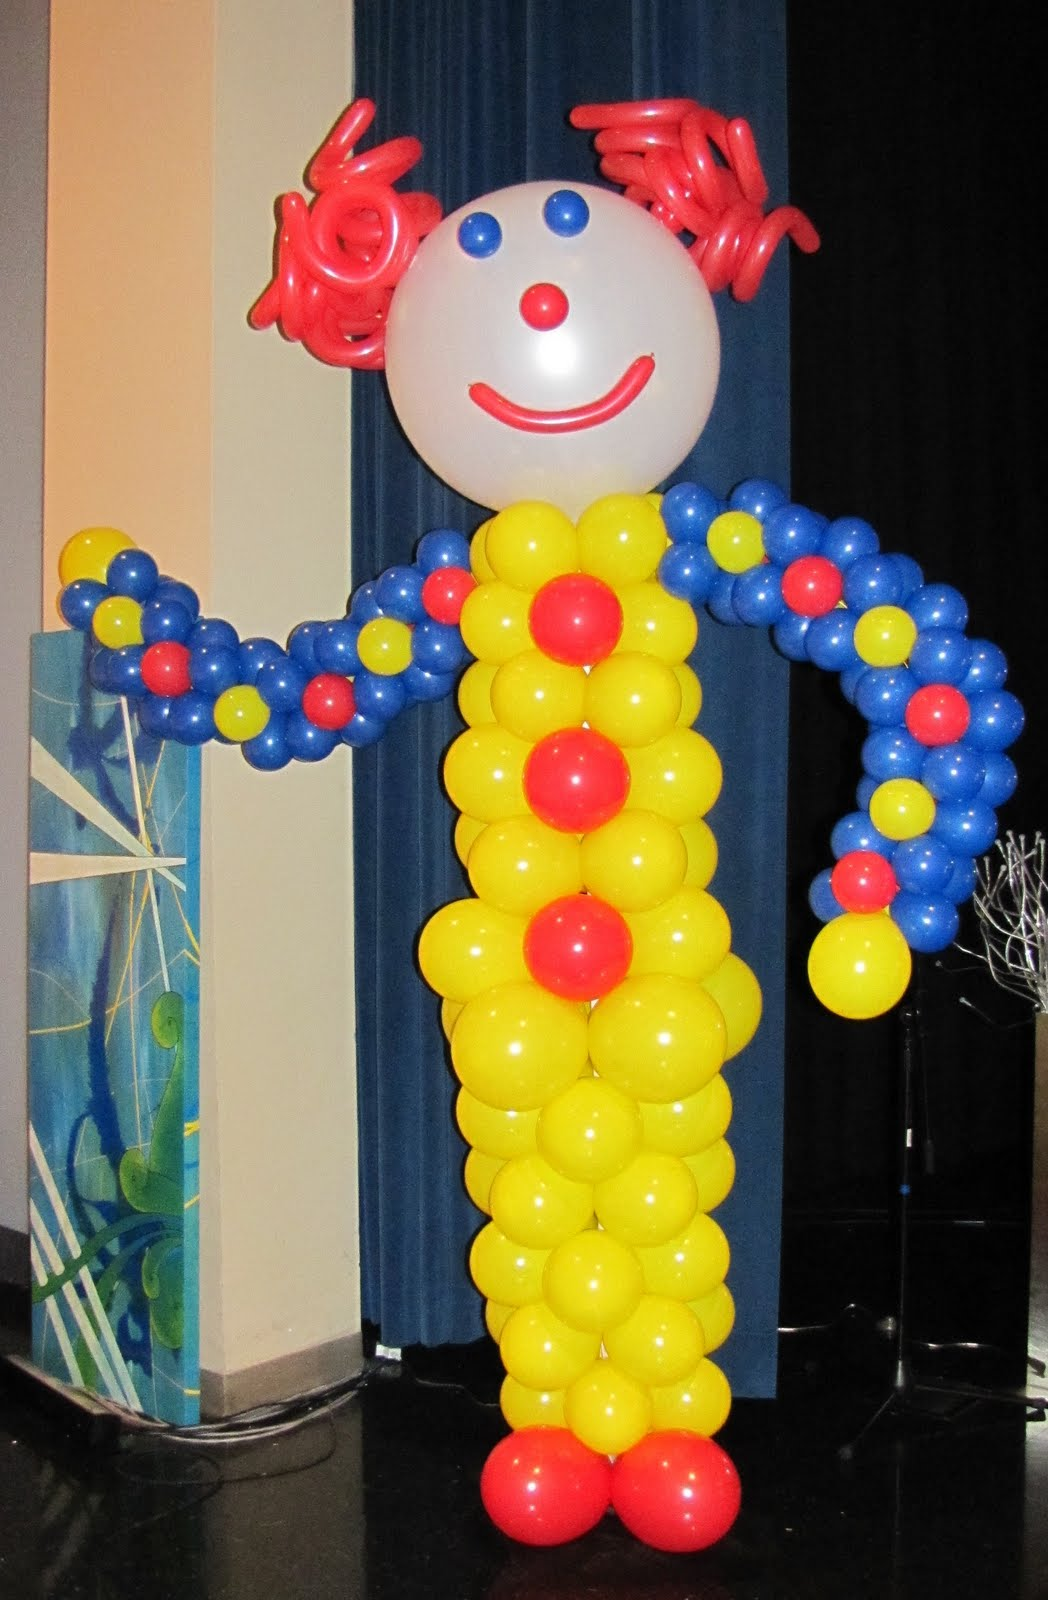 This 8 Ft Tall Clown Helped Bring The Theme Of 3 Ring Circus Onto Stage For HPNY Highland Park Nazarene Youth Middle School Kick Off Event